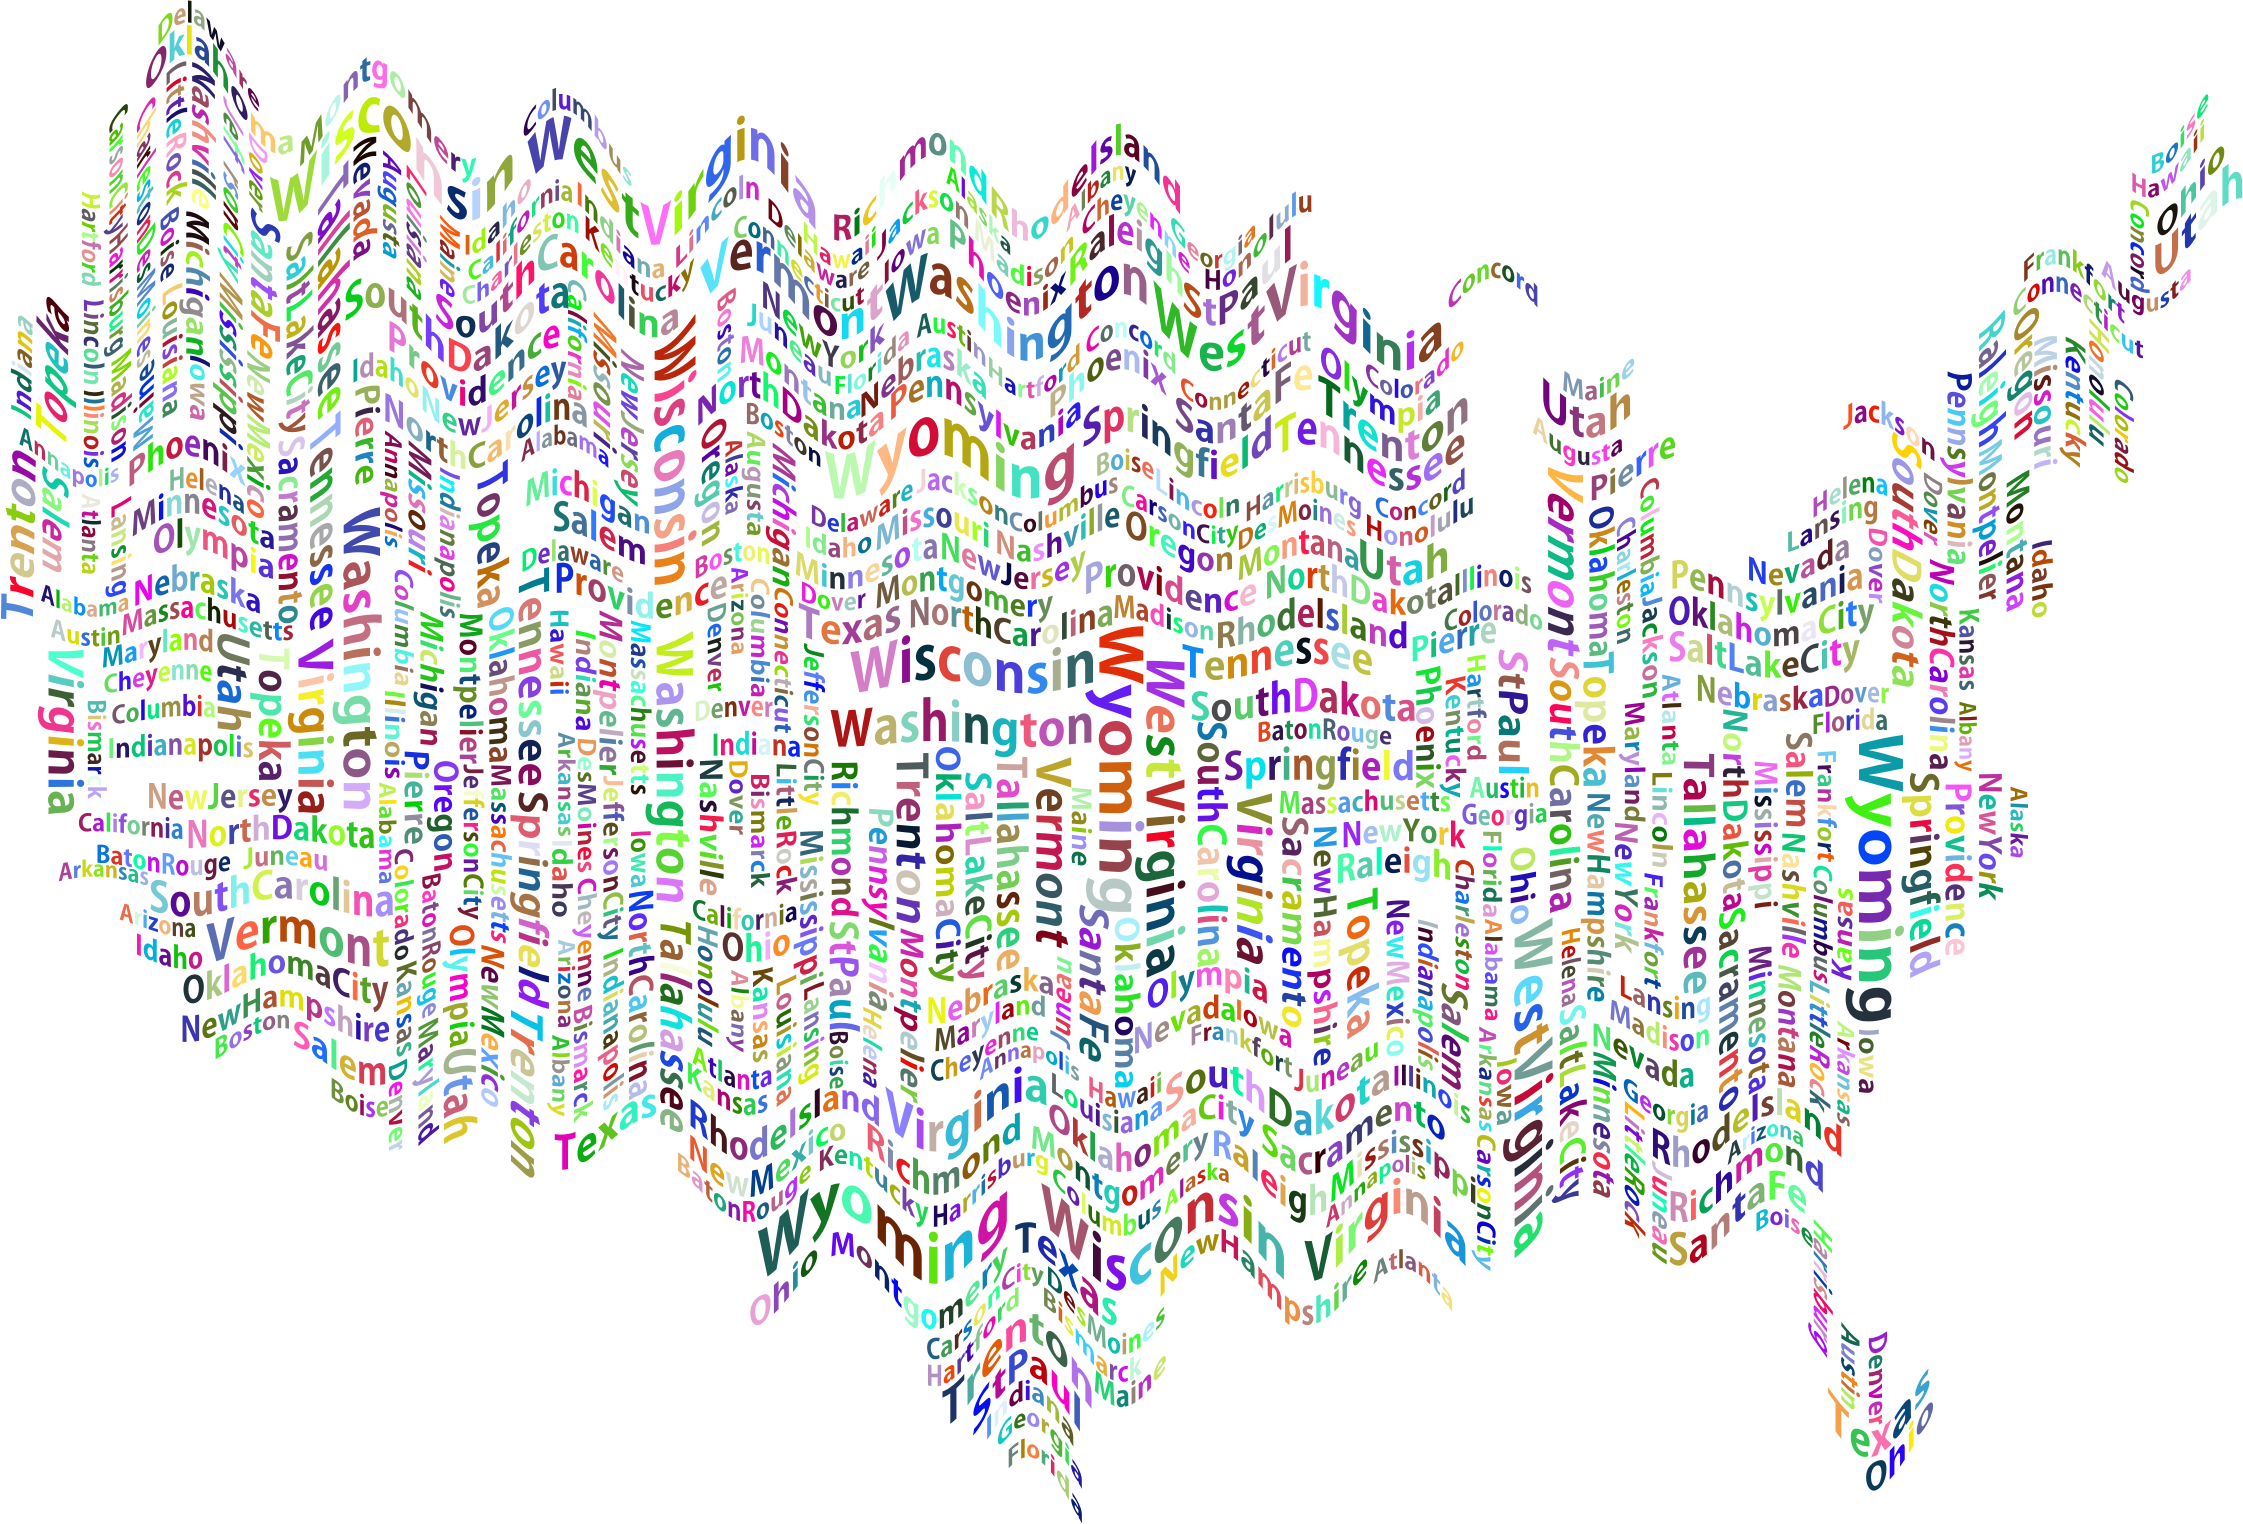 Prismatic Ripples America States And Capitals Word Cloud No Background by GDJ